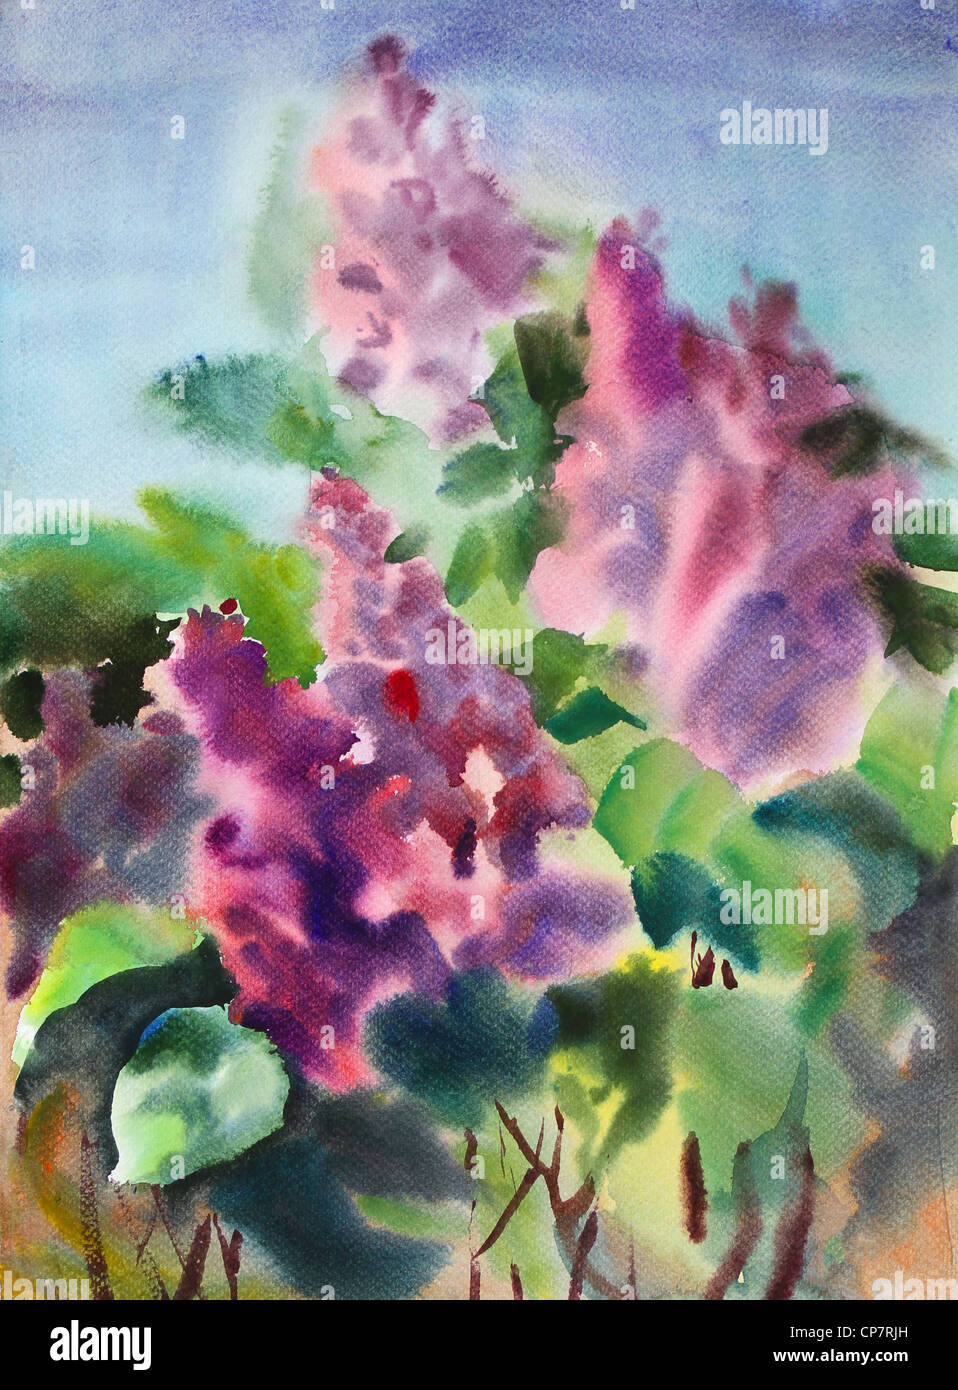 Watercolor Painting Of The Beautiful Flower Appreciation Stock